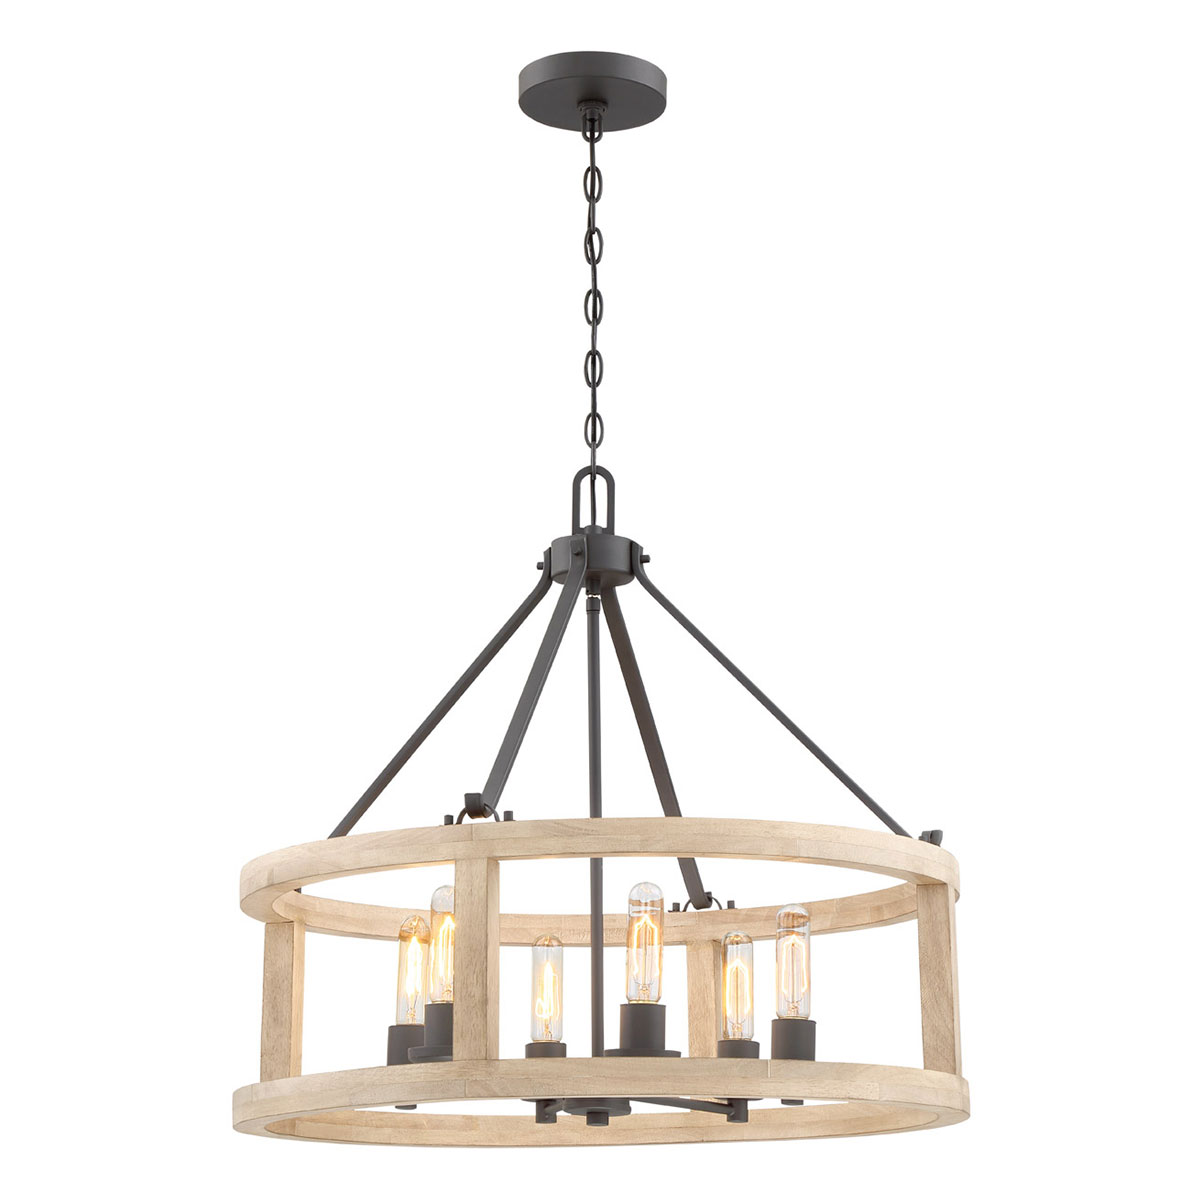 Large Pendant Lights For Foyer Australia : Atwood light large pendant